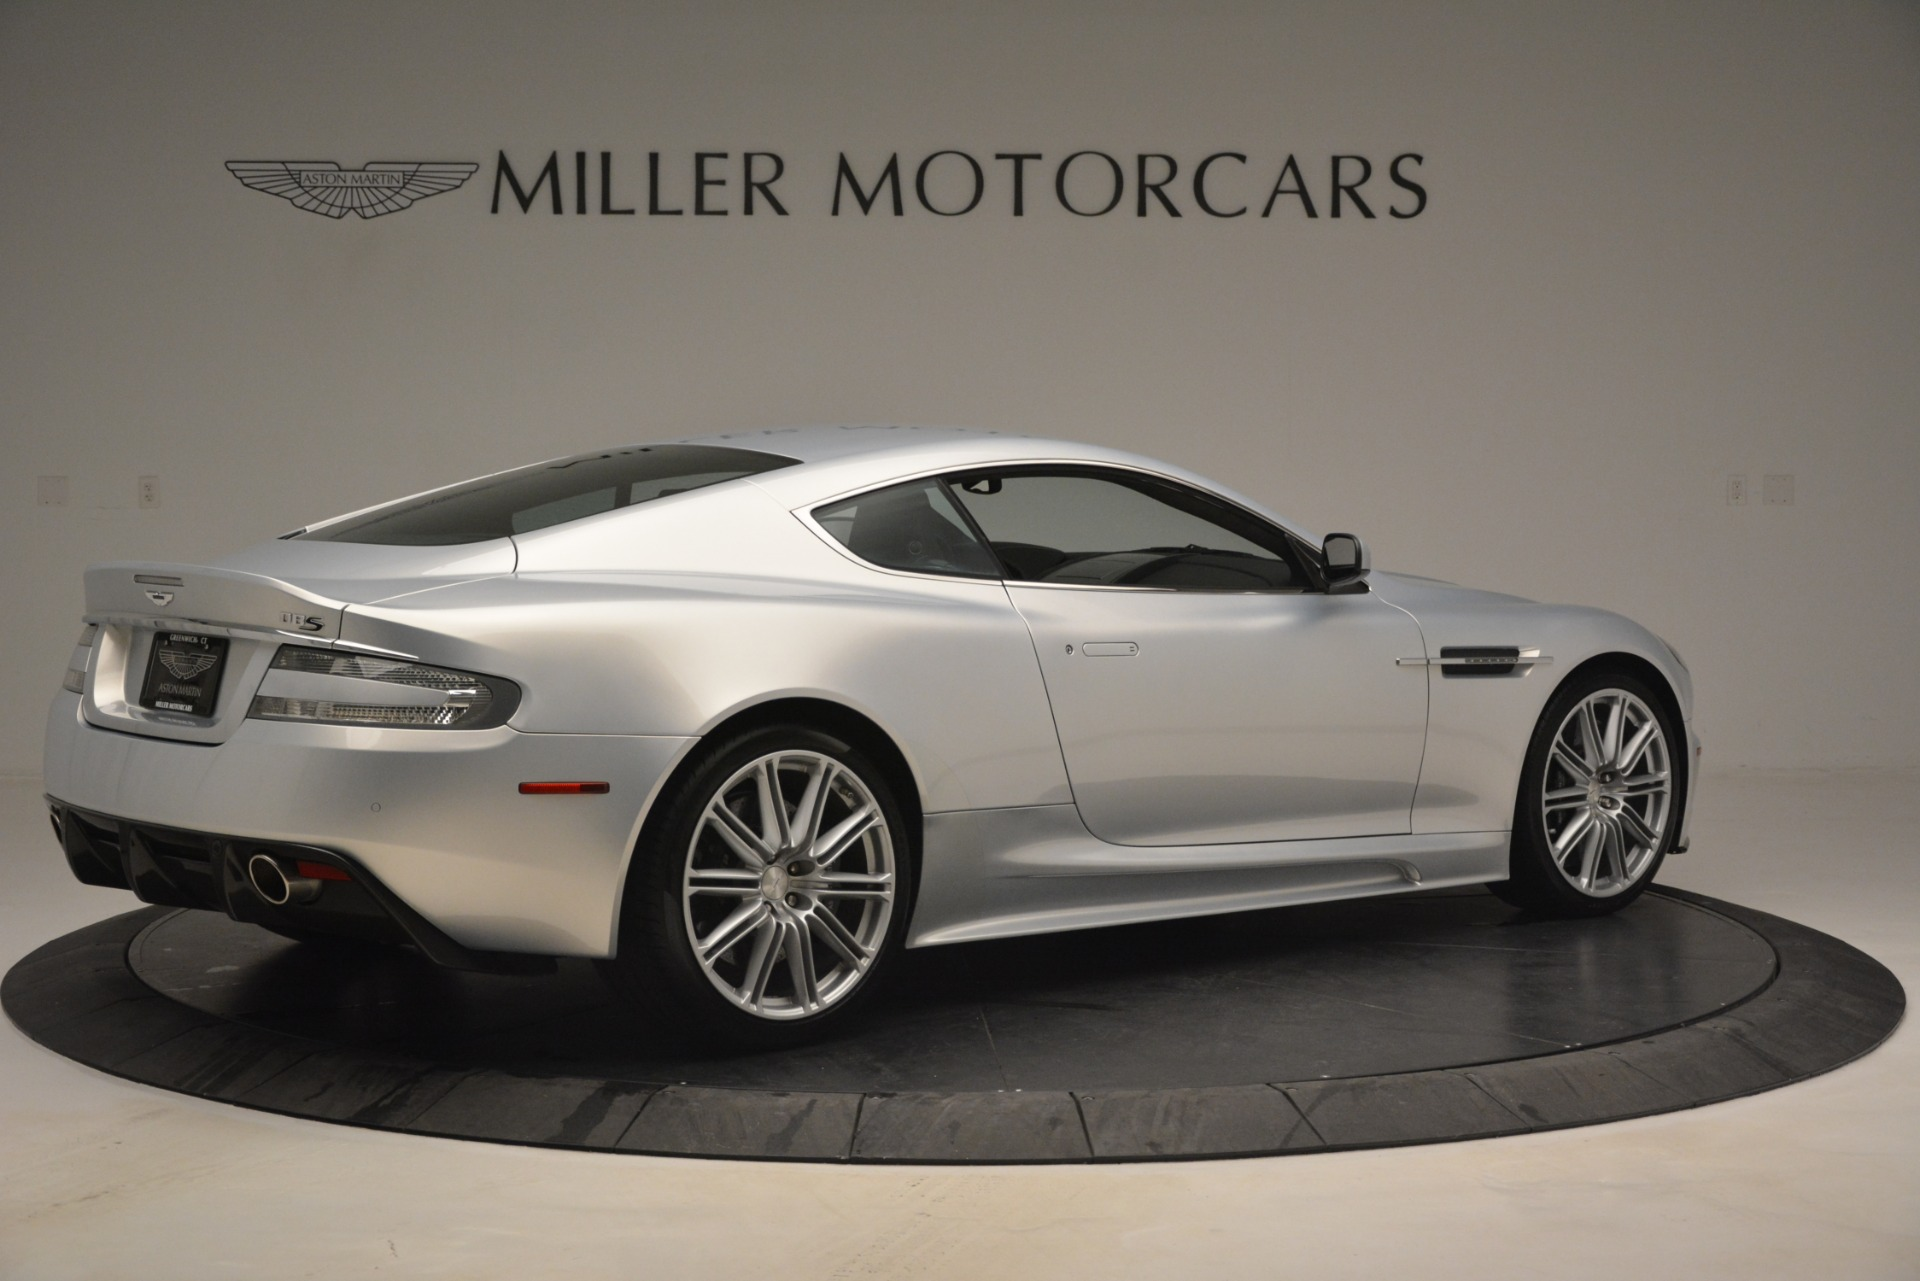 Used 2009 Aston Martin DBS Coupe For Sale In Westport, CT 3033_p8